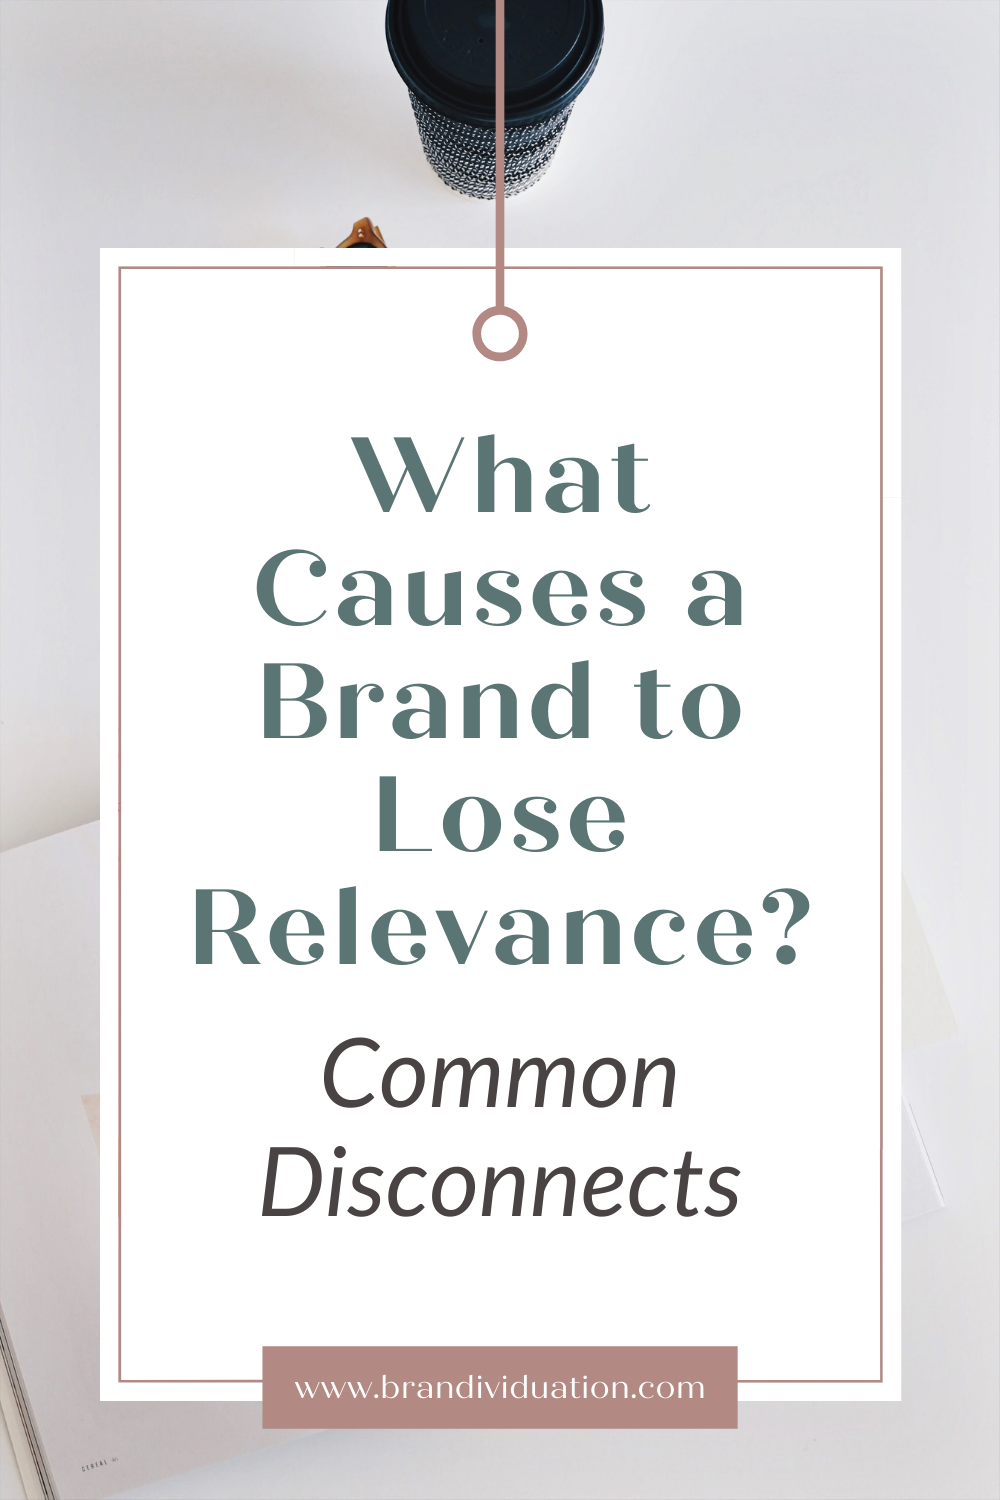 What Causes a Brand to Lose Relevance? Common Disconnects